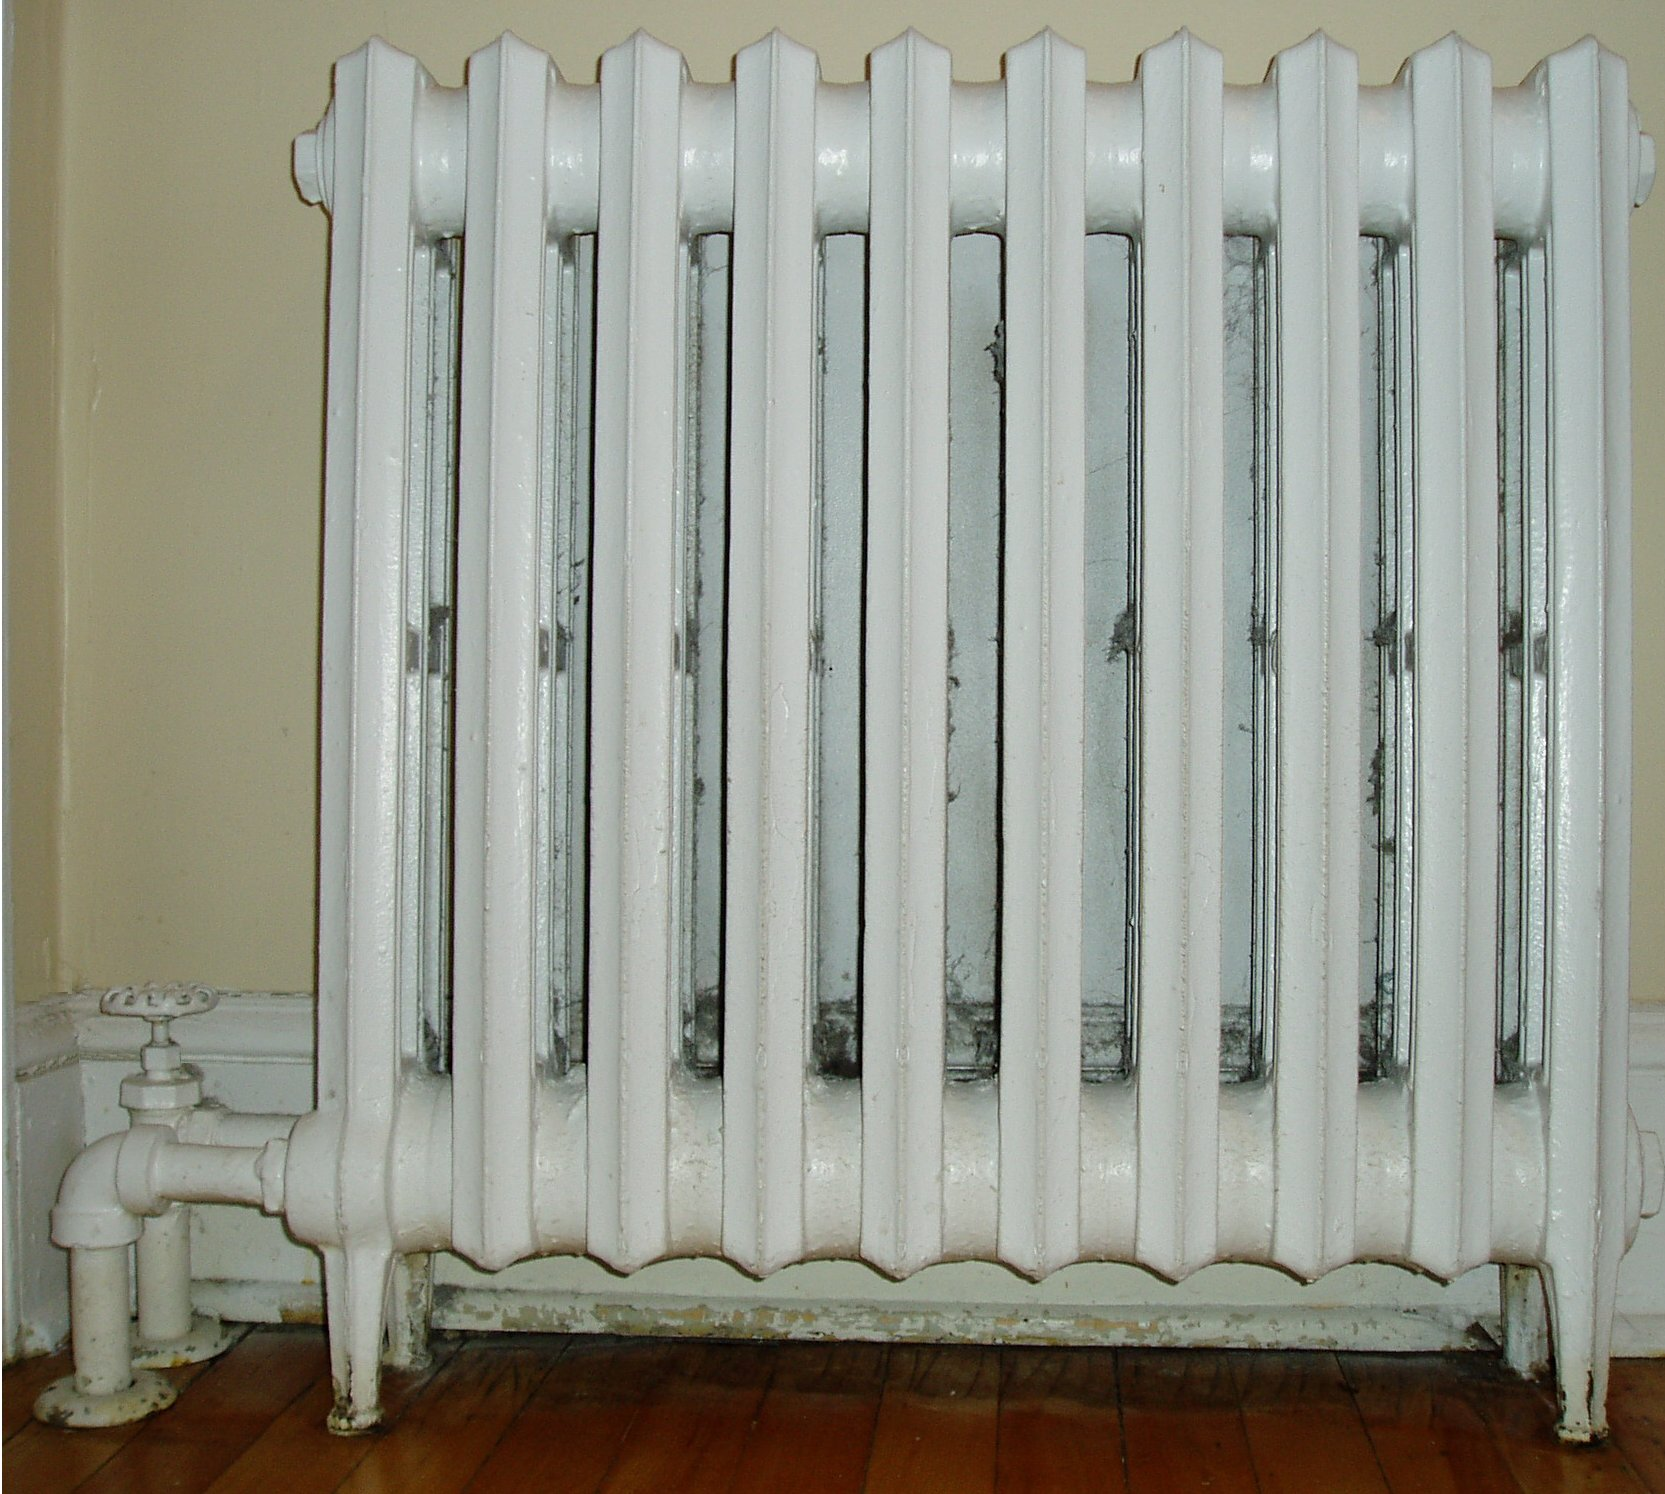 http://upload.wikimedia.org/wikipedia/commons/0/02/Household_radiator.jpg